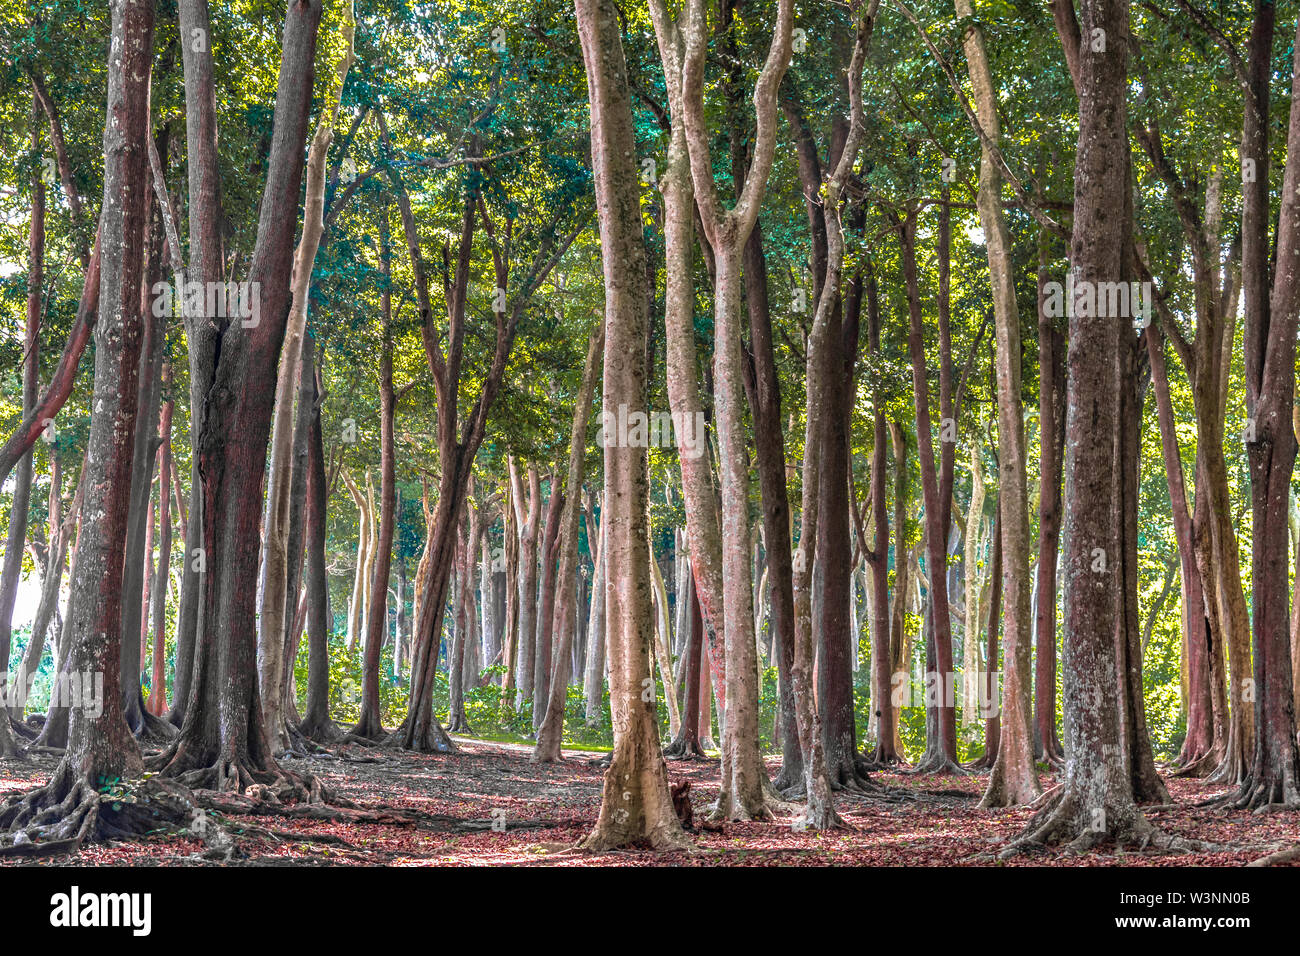 One smile can begin a friendship; Tropical Evergreen Forest With Tall Trees On Autumn Season The Fallen Leaves Are Decomposing And Has Covered All Ground Giving It Dreamy Red Color Stock Photo Alamy